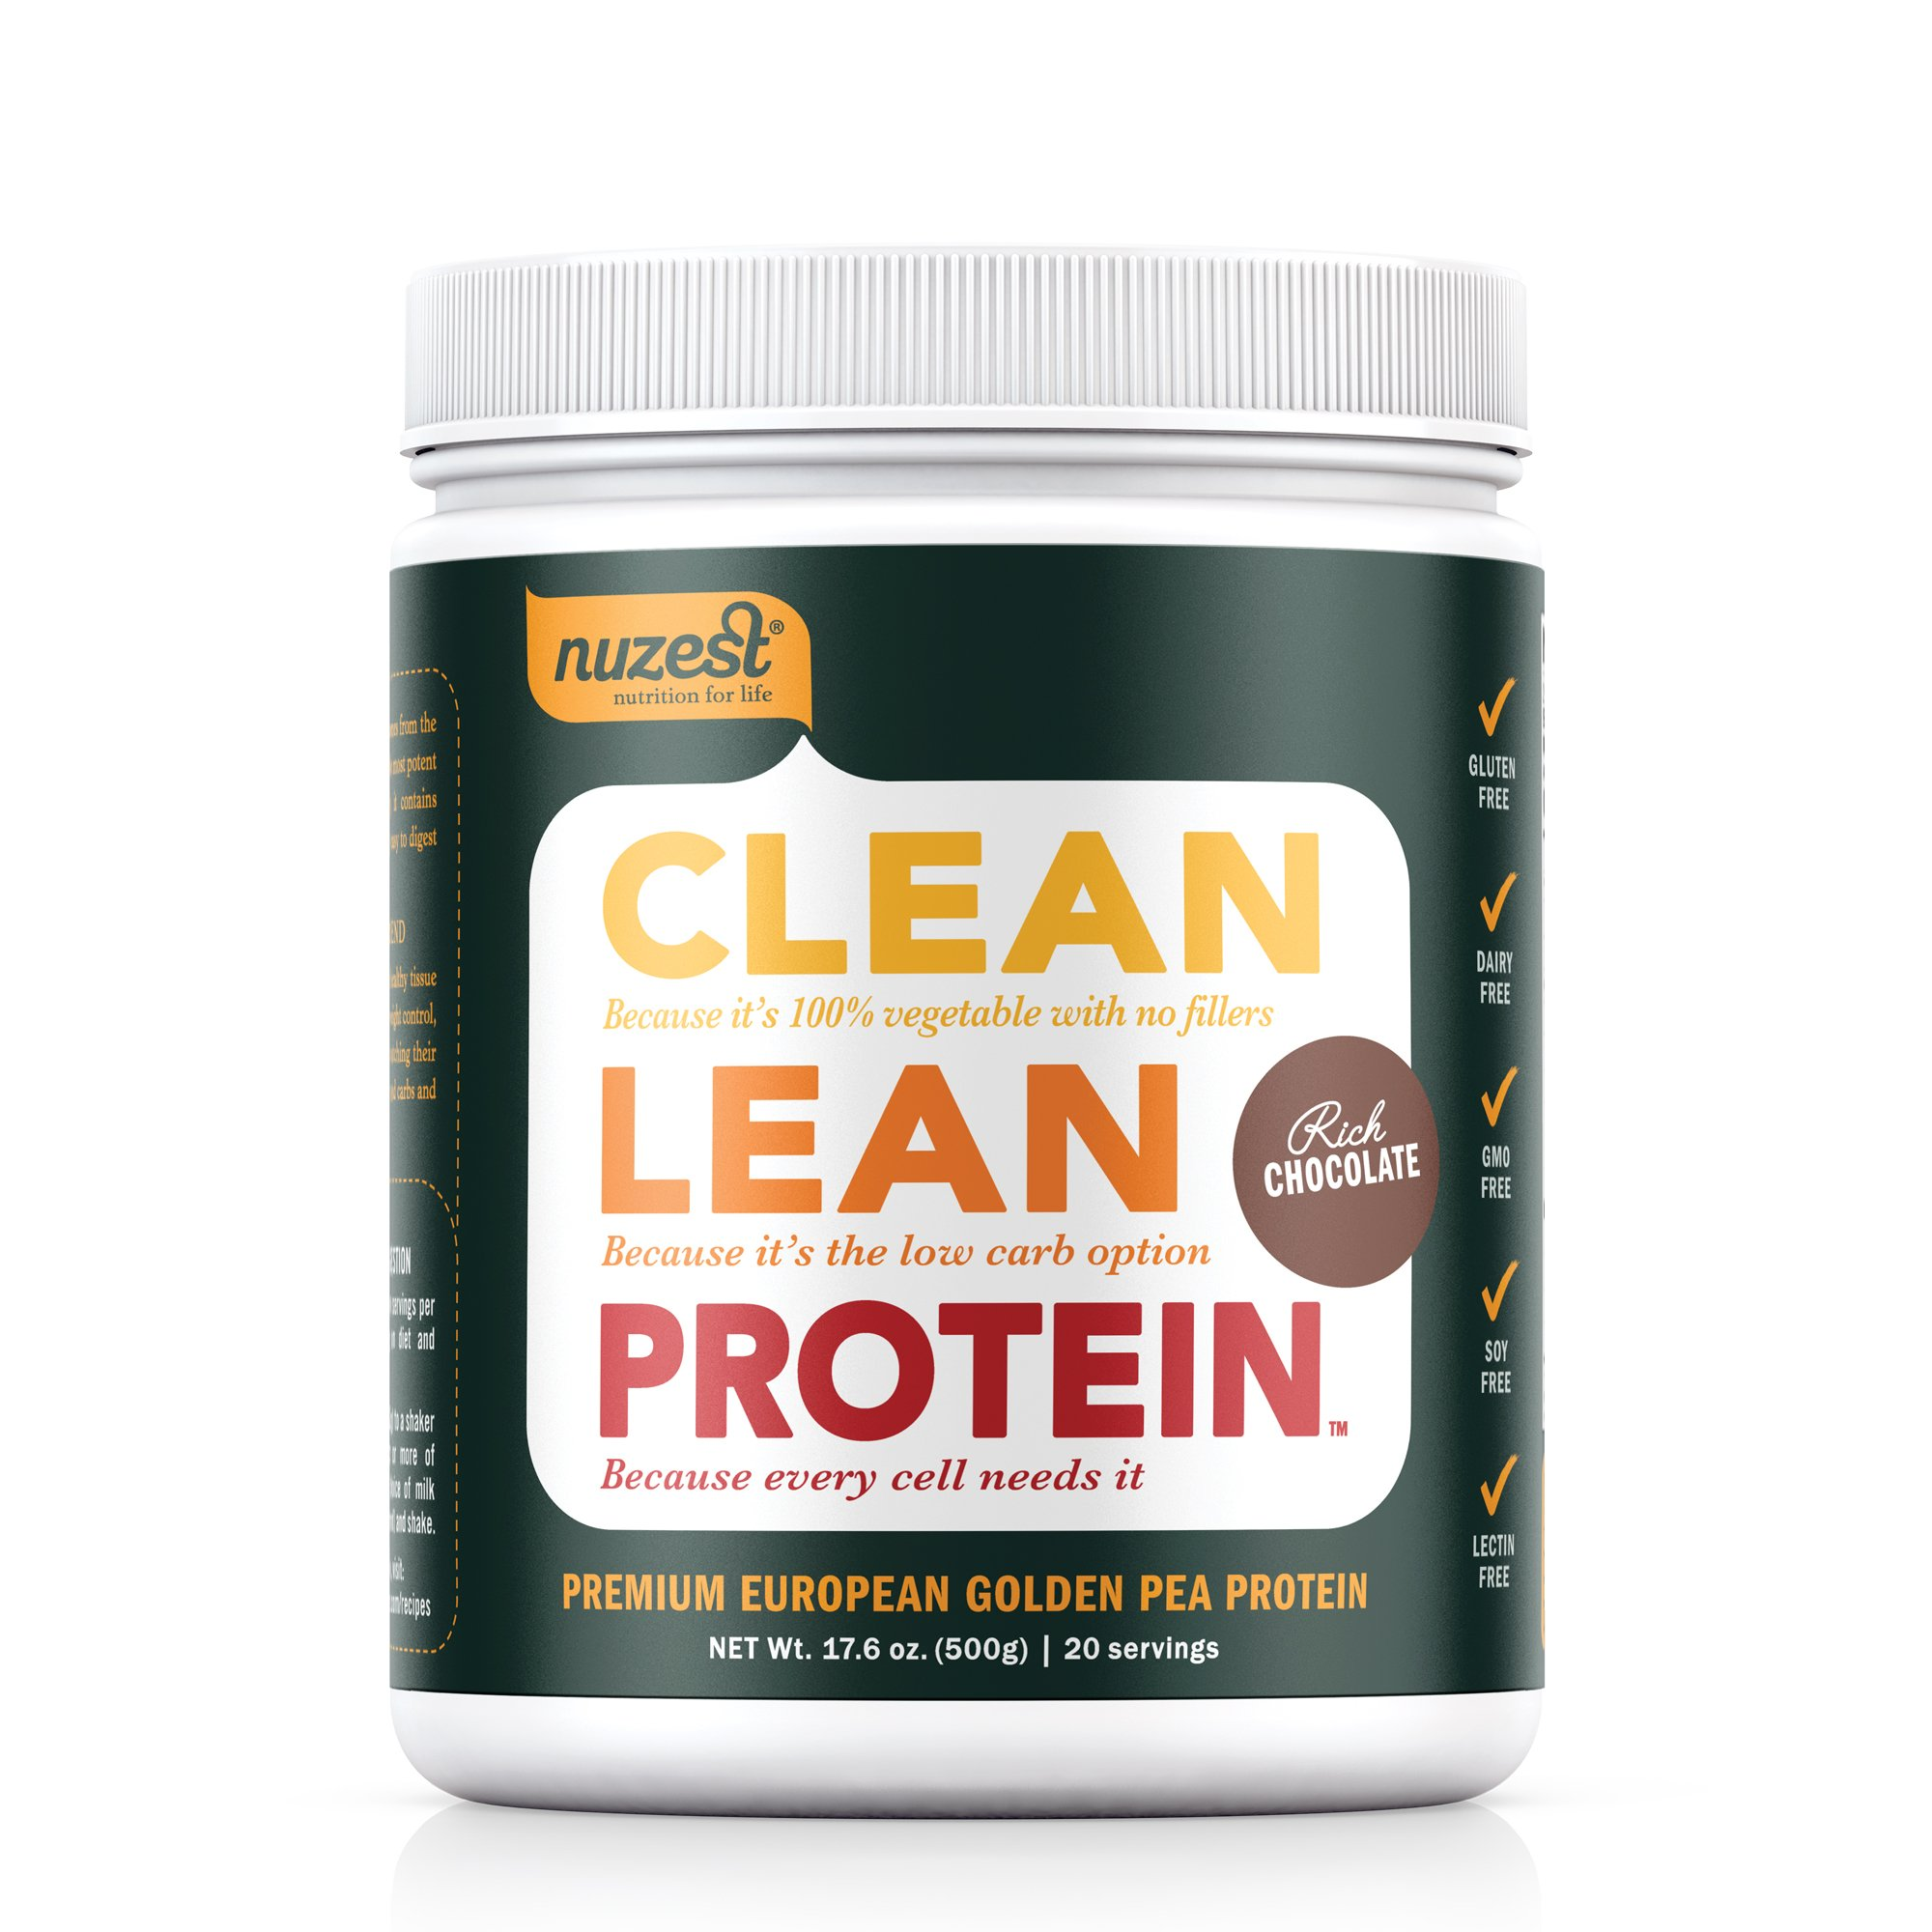 Nuzest Clean Lean Protein - Premium Vegan Protein Powder, Plant Protein Powder, European Golden Pea Protein, Dairy Free, Gluten Free, GMO Free, Naturally Sweetened, Rich Chocolate, 20 Servings, 1.1 lb